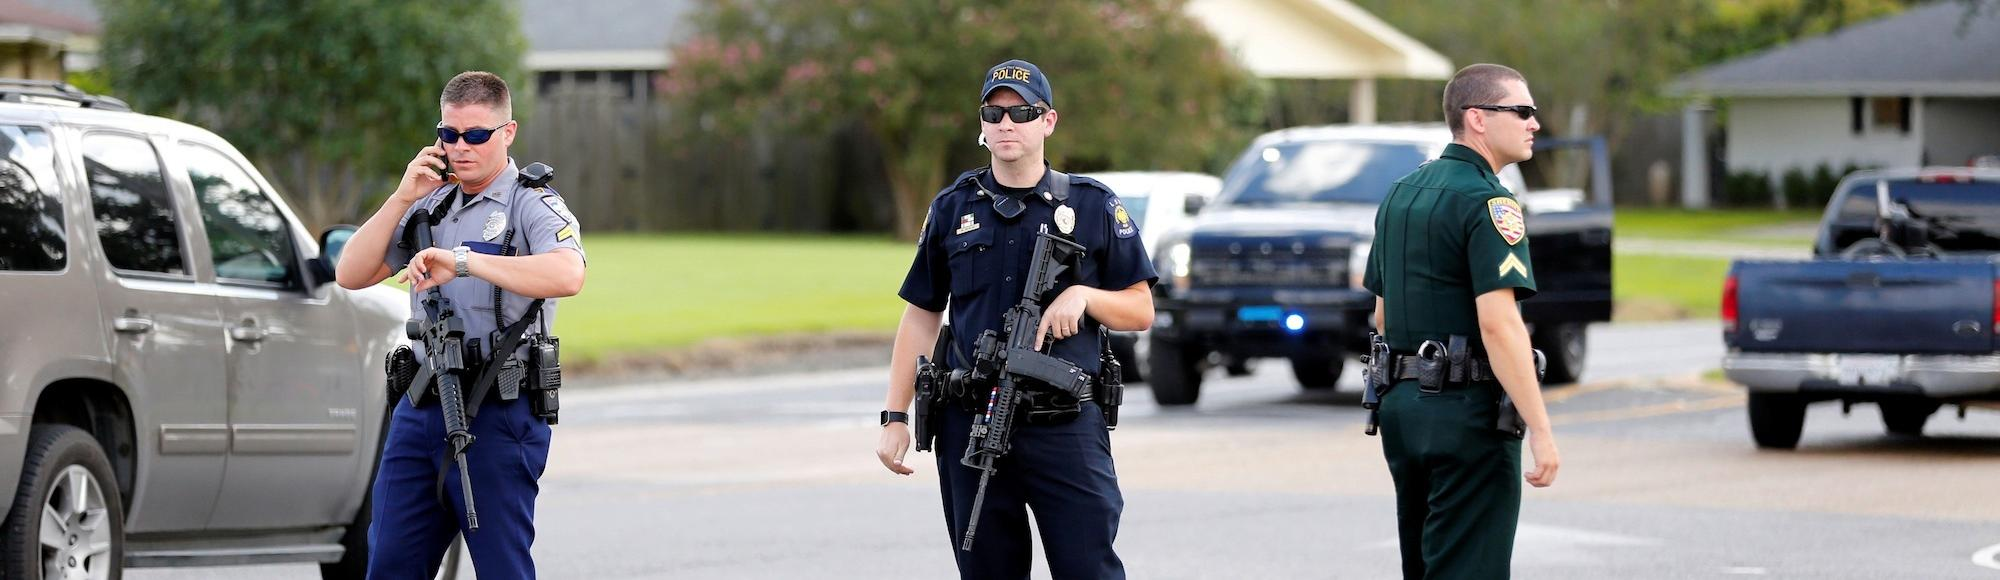 Three police officers are dead after a shooting in Baton Rouge